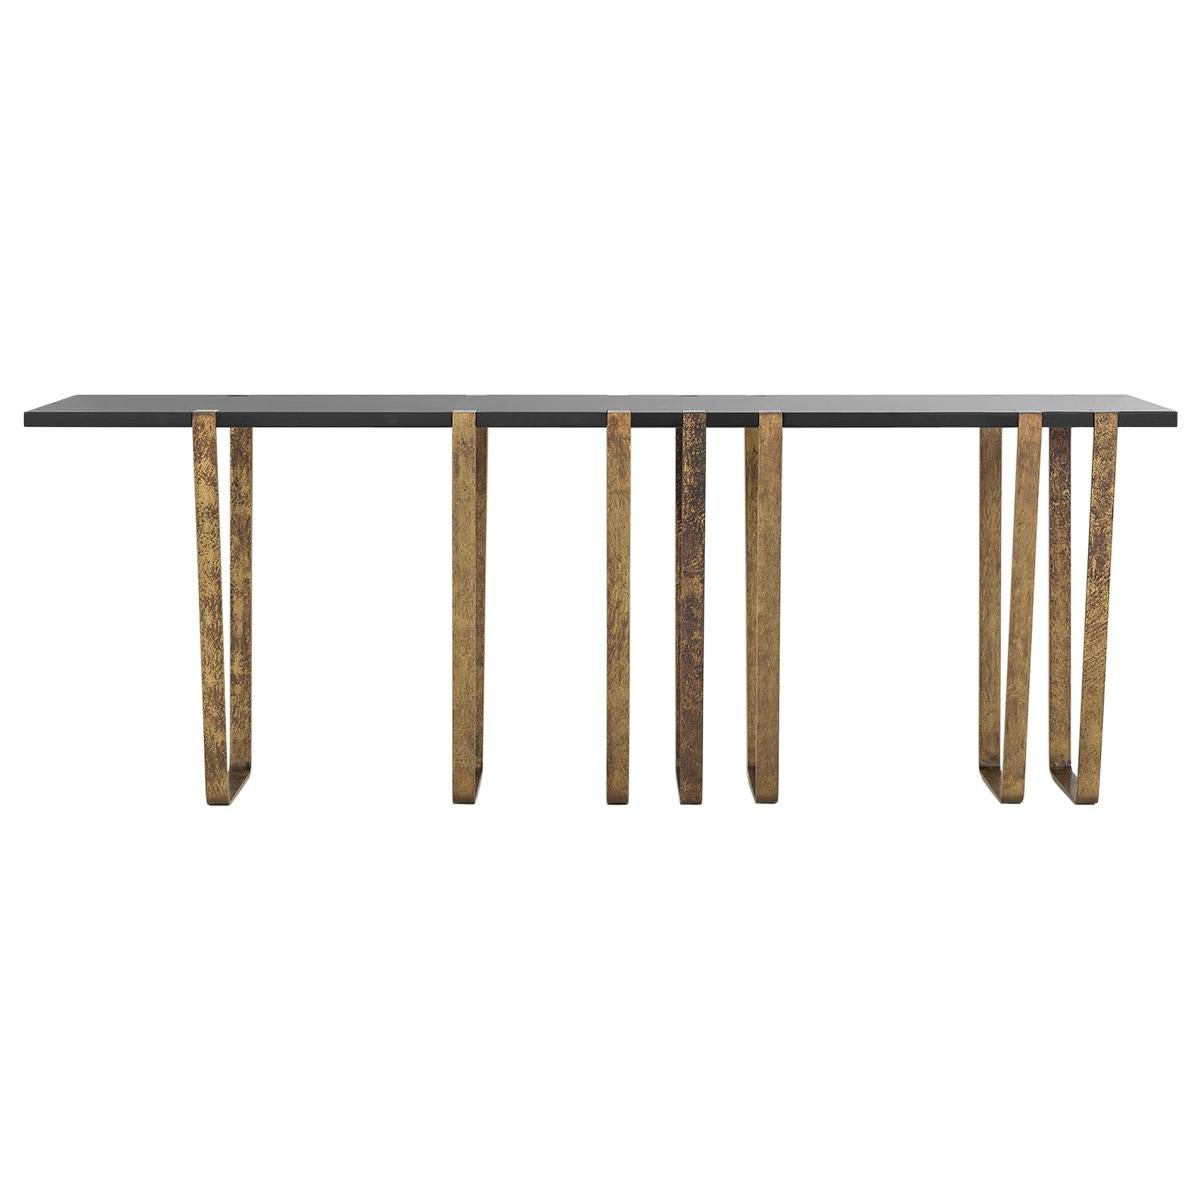 Consolle 021 Wall Fixed Console in Brass and Lacquered Wood by Dimoremilano